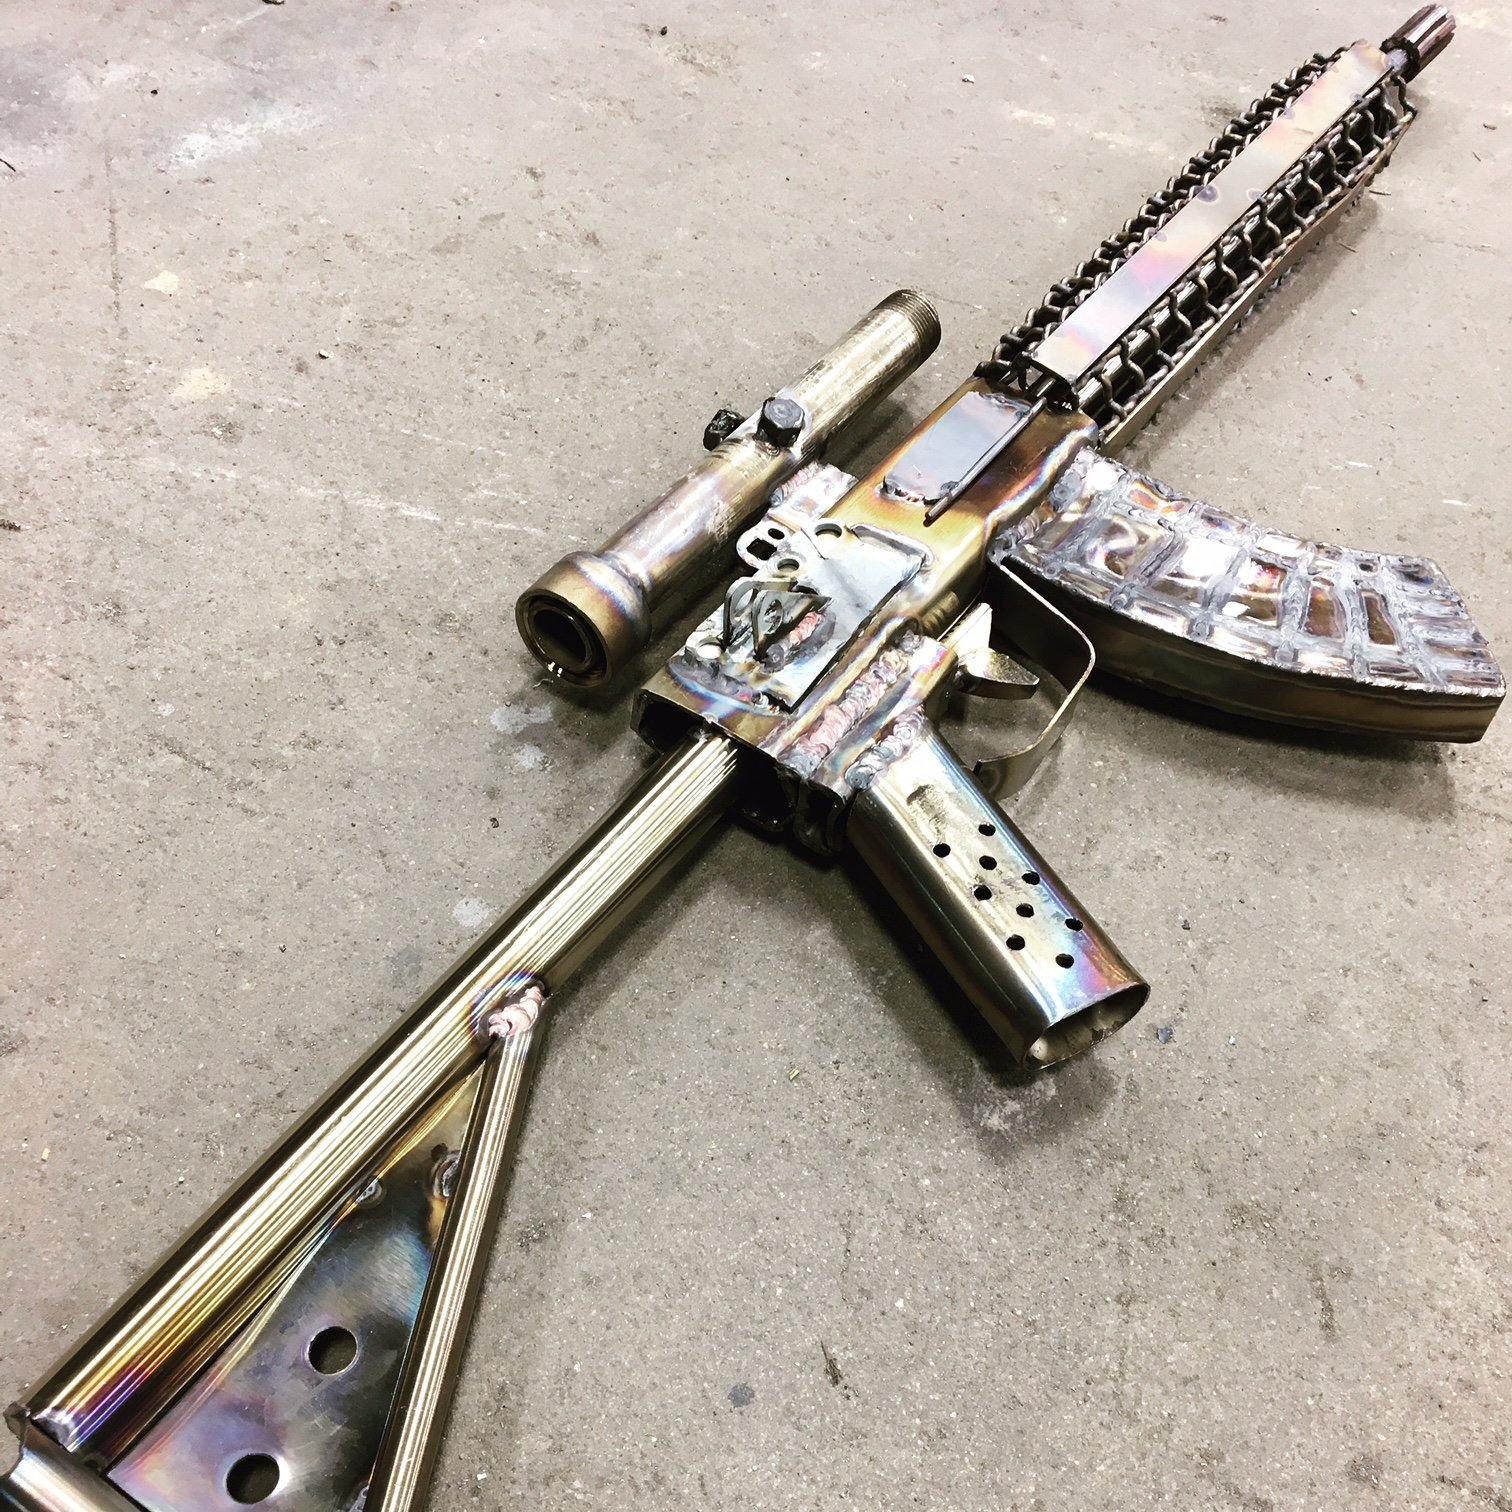 Stainless Steel AR-15 Reproduction by OzarkSteelArtisan